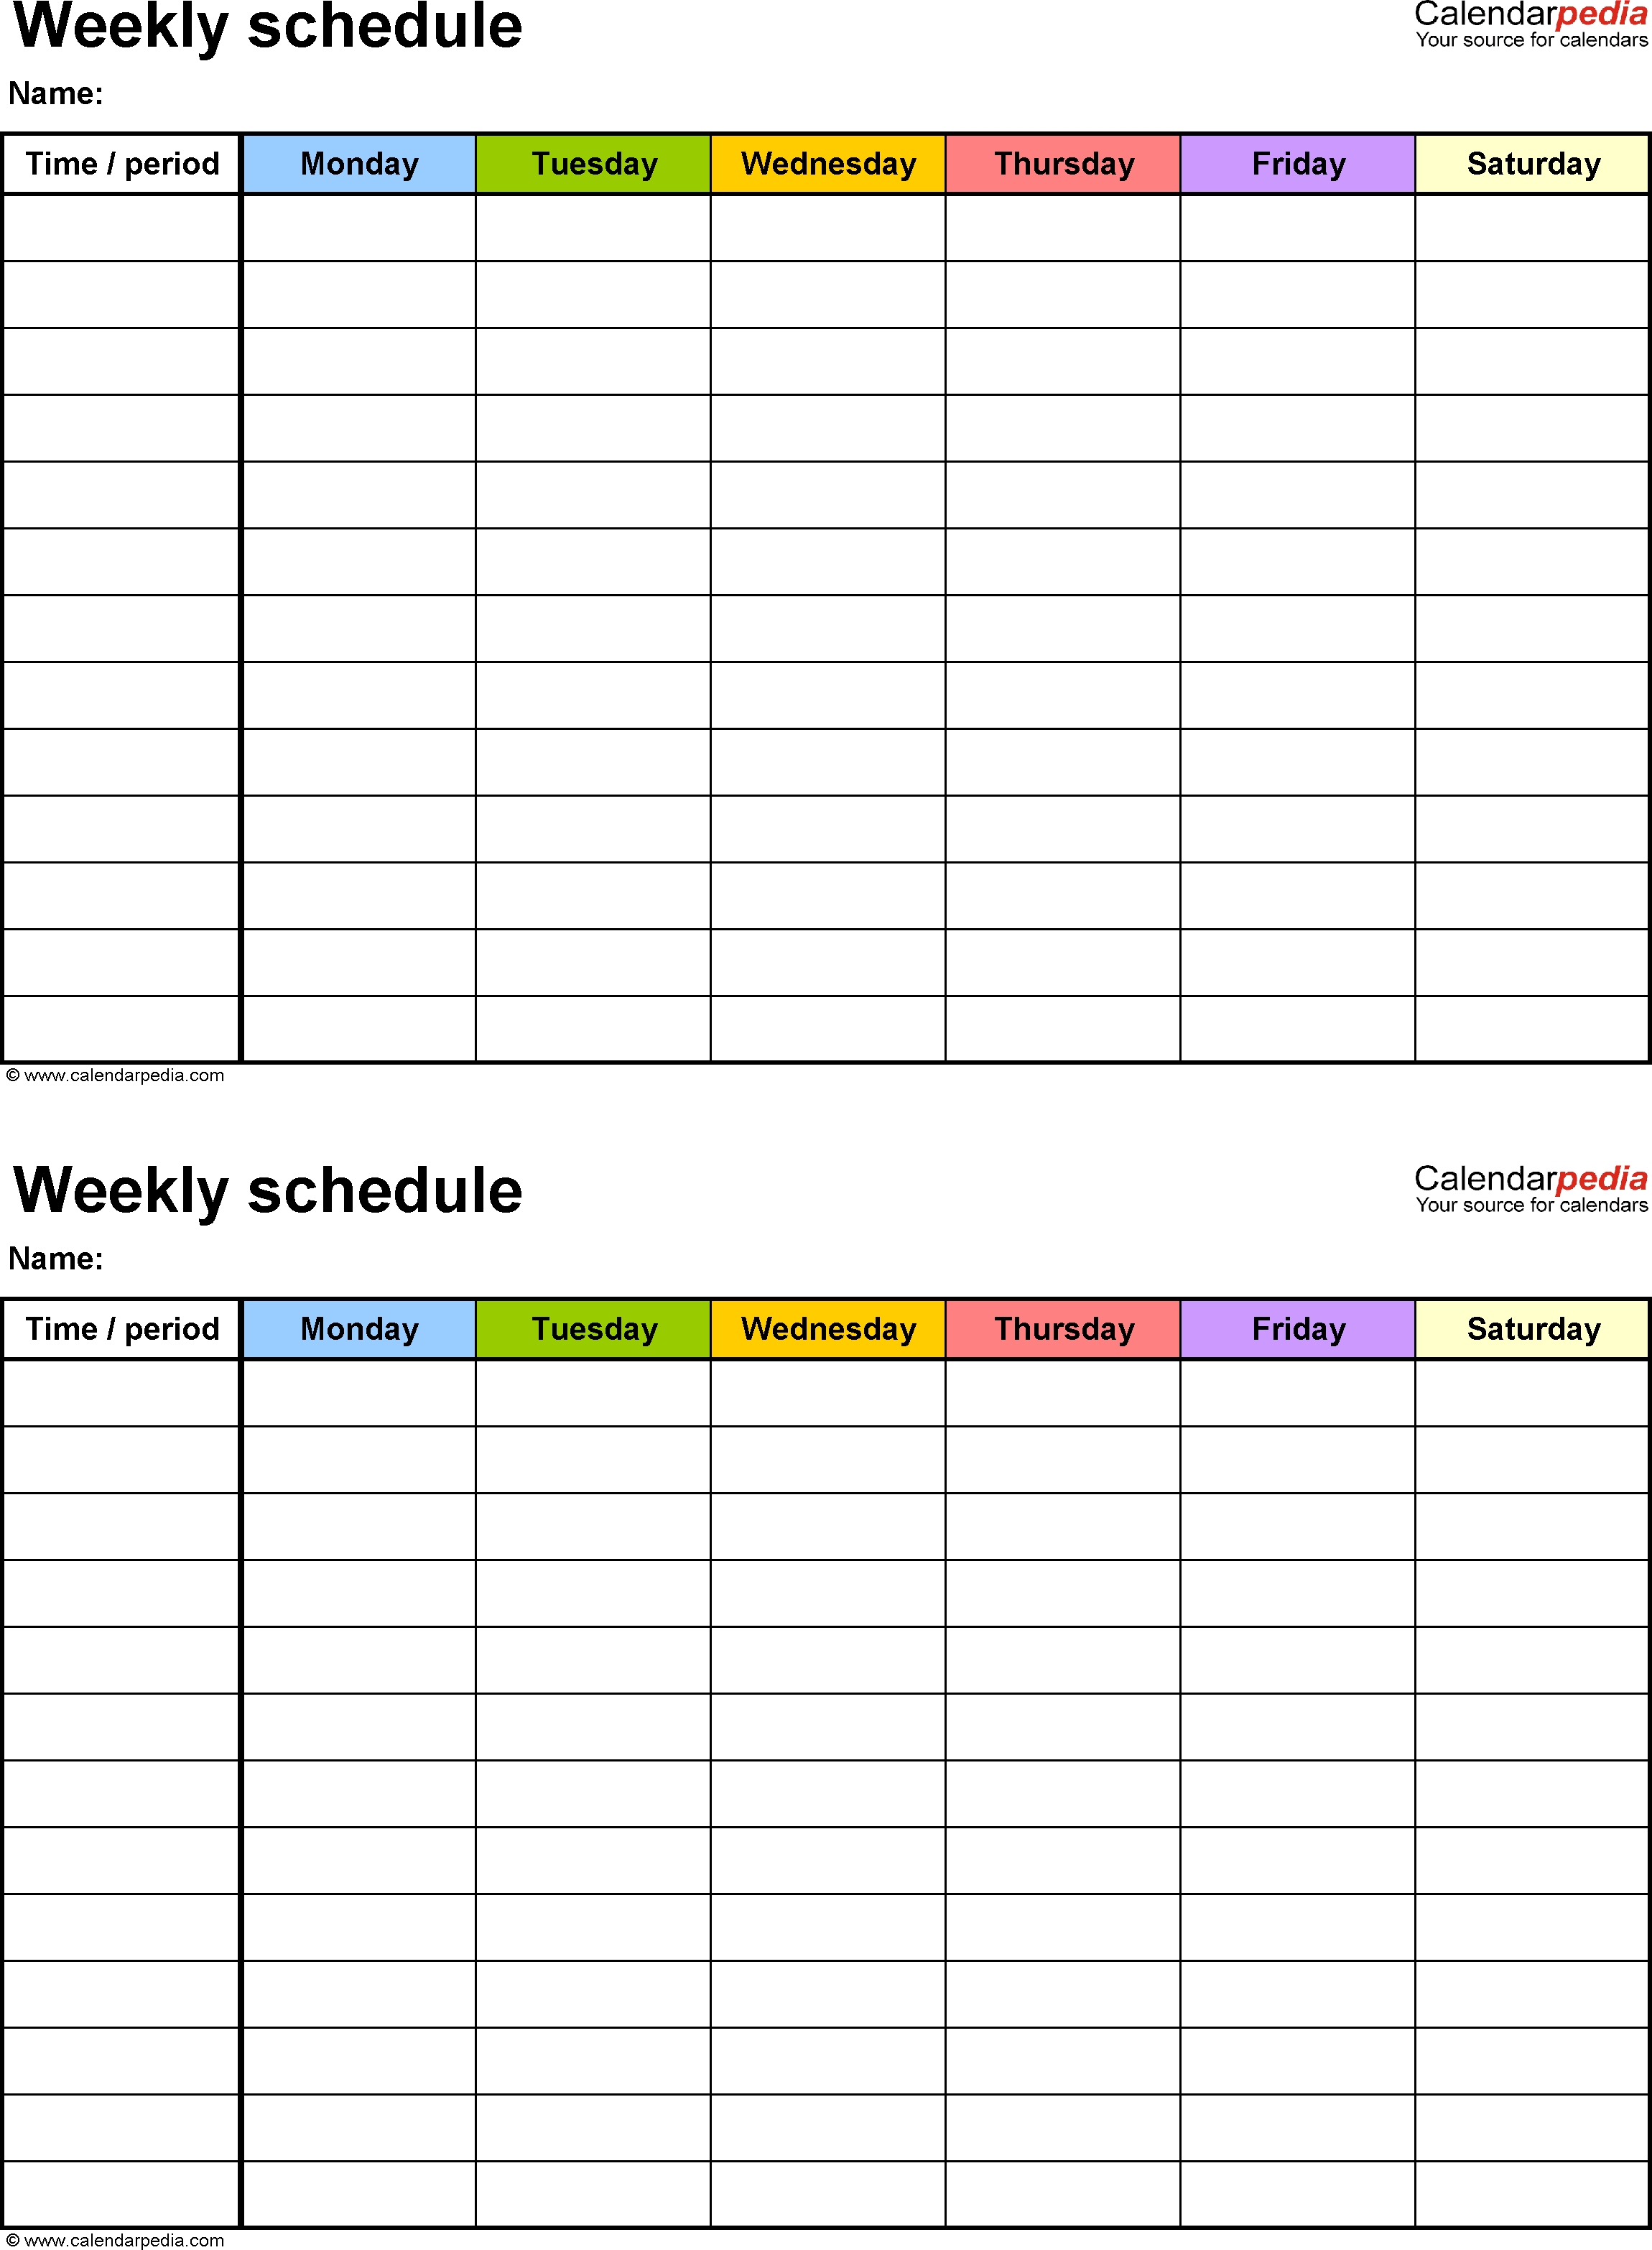 Free Weekly Schedule Templates For Word - 18 Templates regarding 7 Day Week Free Schedule Template